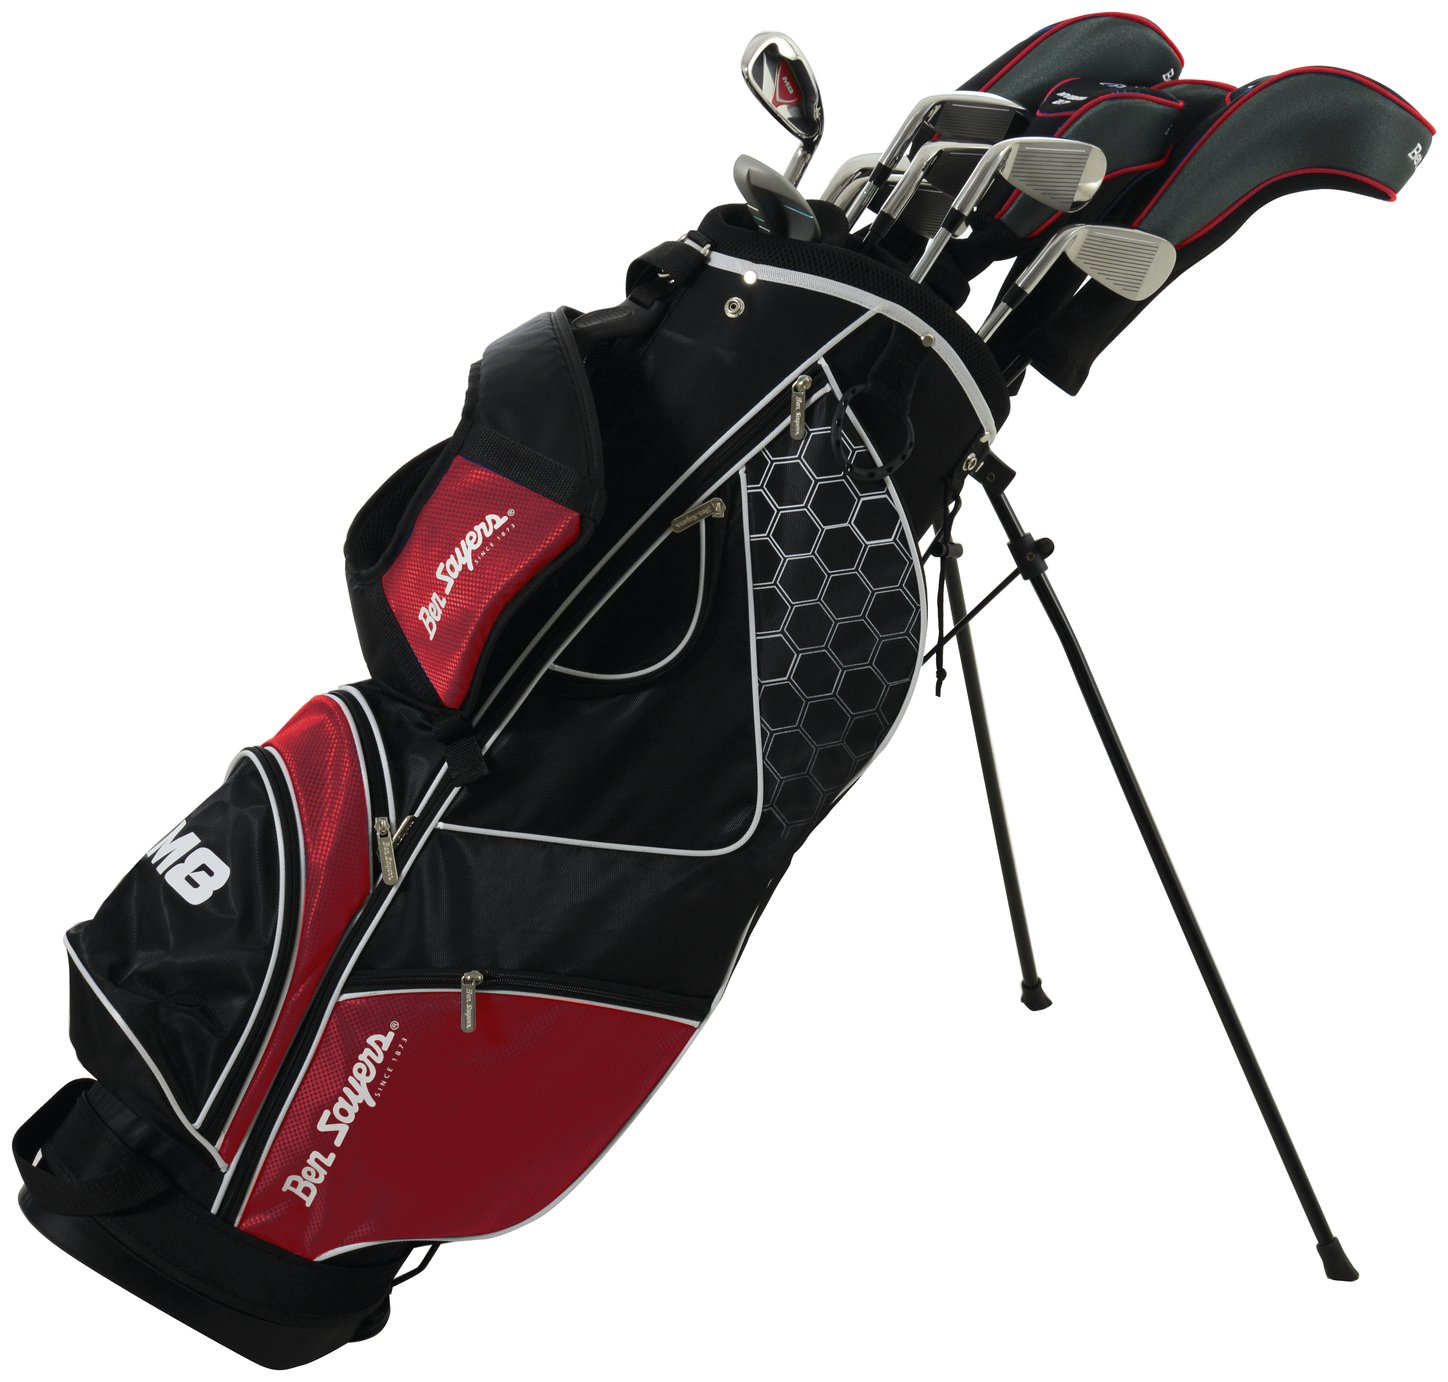 Image of Ben Sayers Mens' M8 Golf Set with Stand Bag - Red